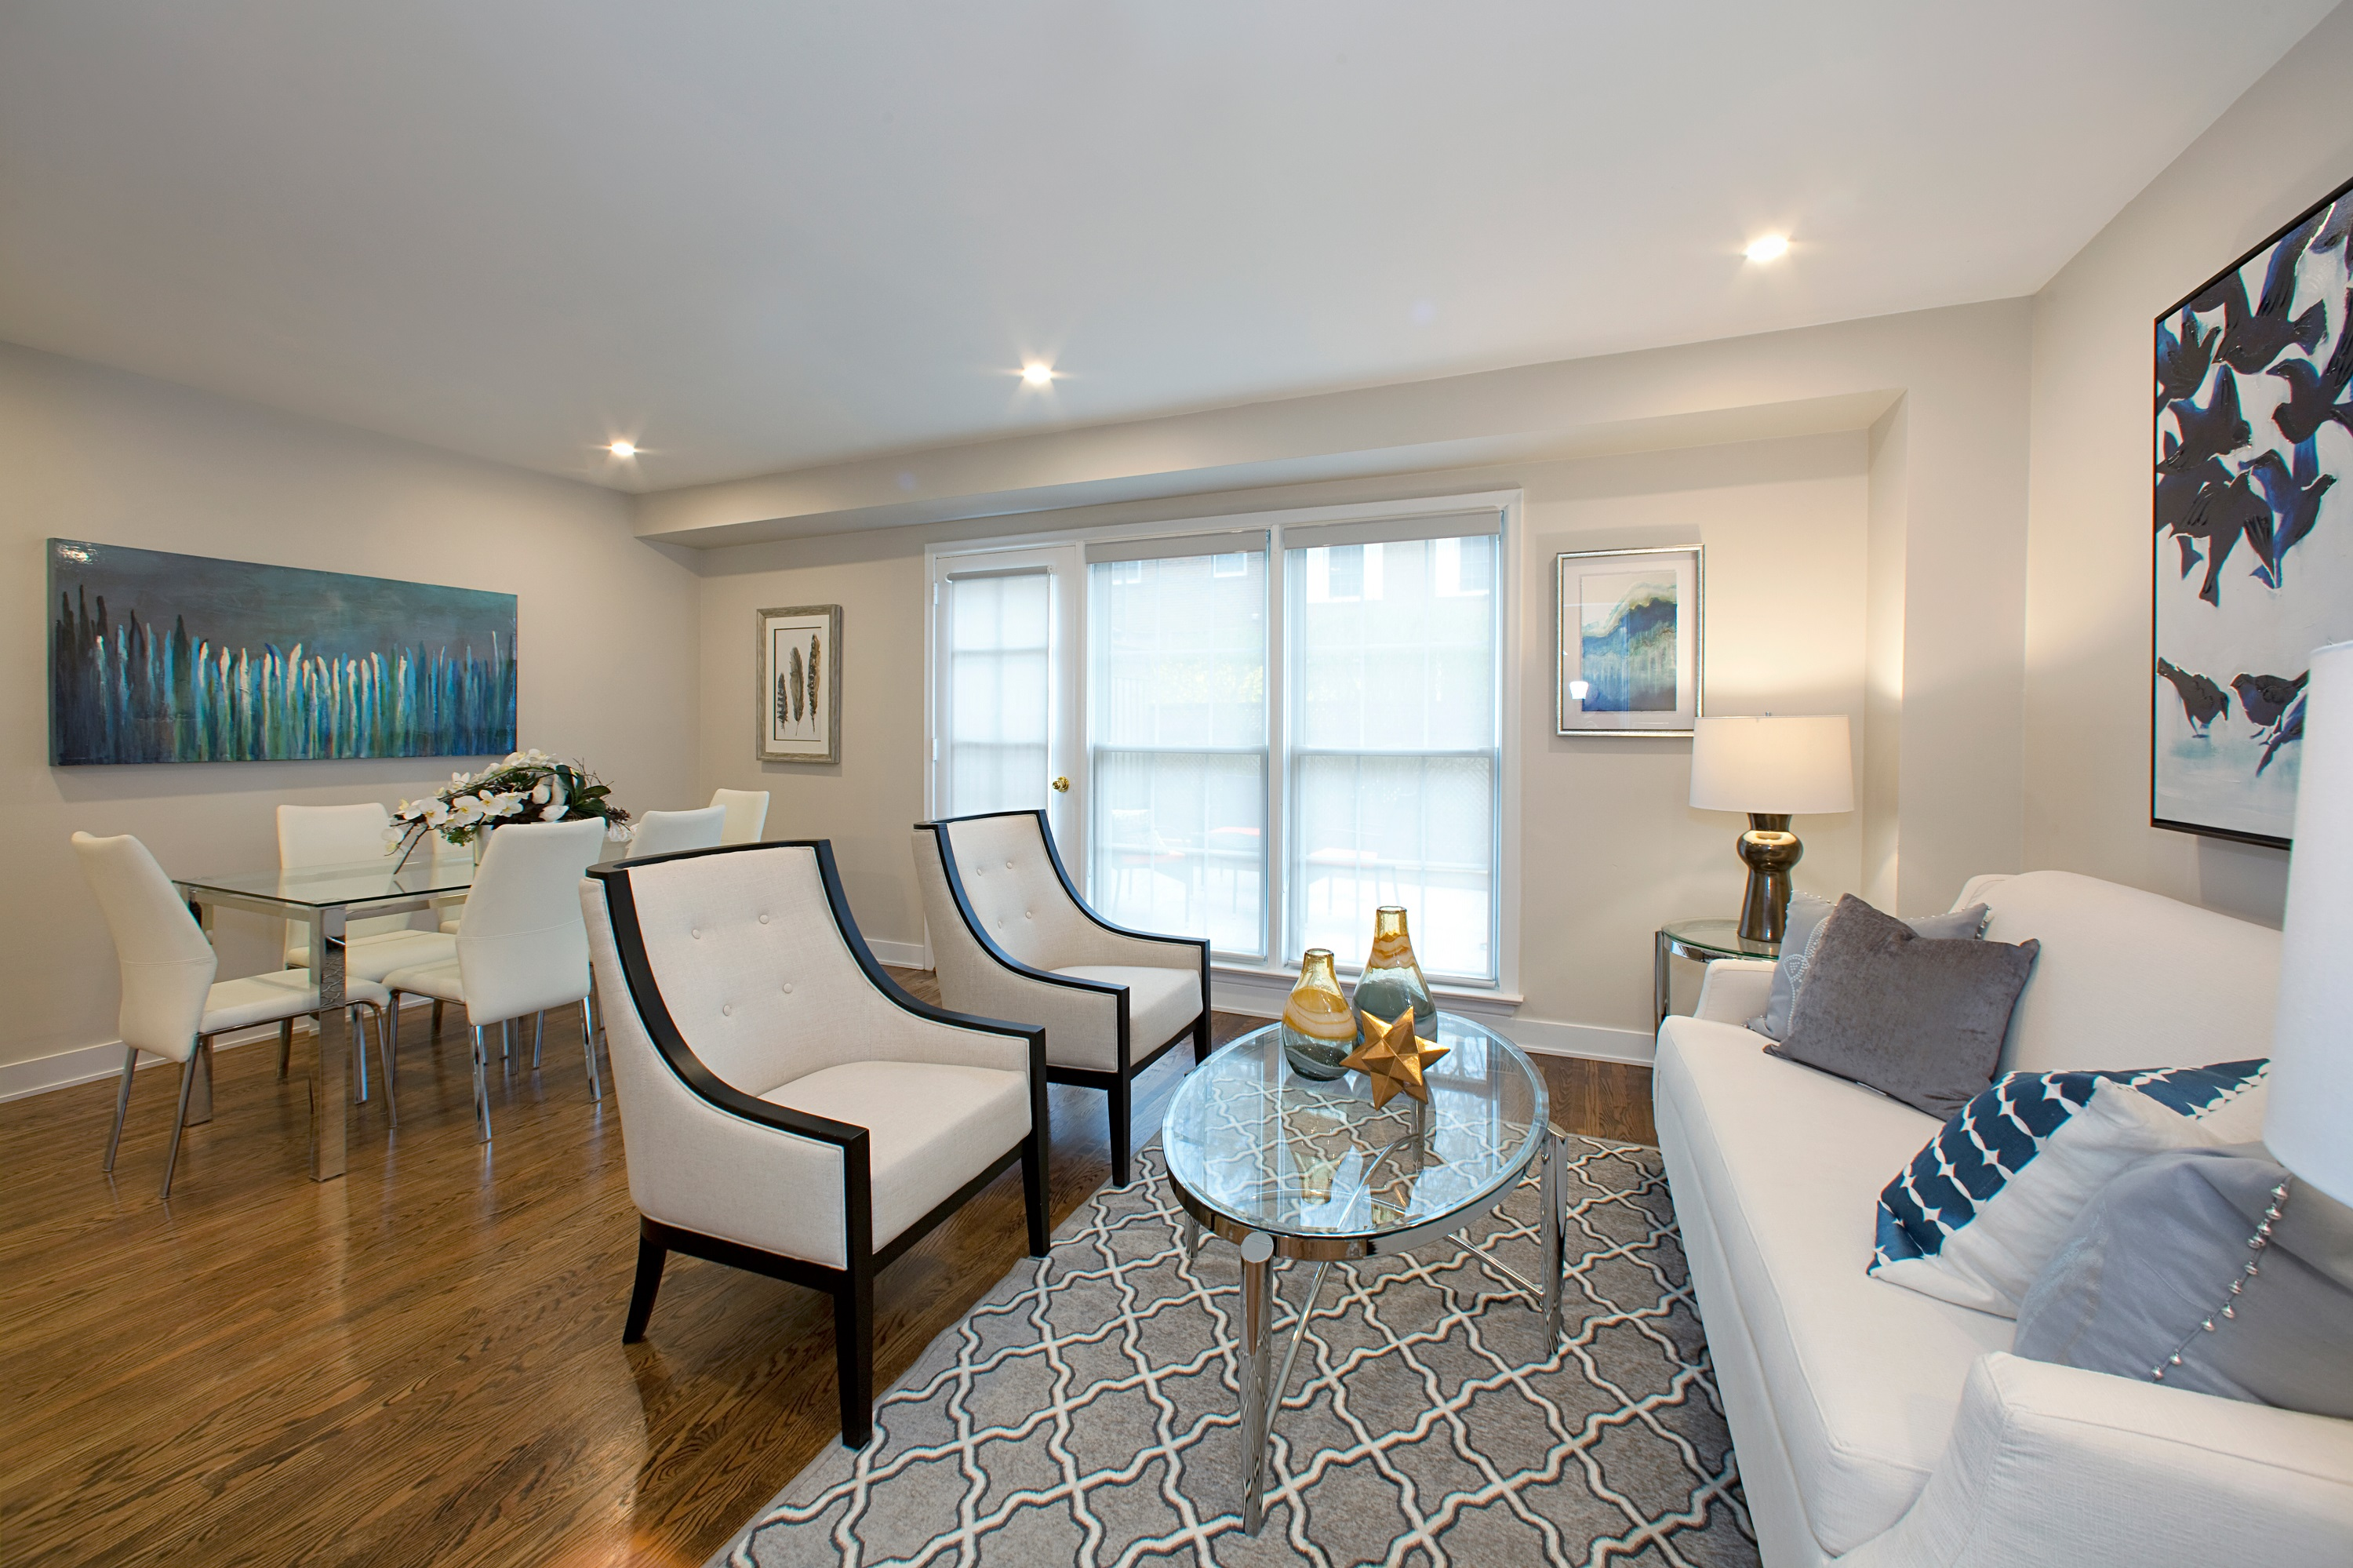 2 bedroom apartments for rent in toronto on rentcaf rh rentcafe com 2 bedroom apartments for rent toronto 2 bedroom apartments for rent toronto beaches